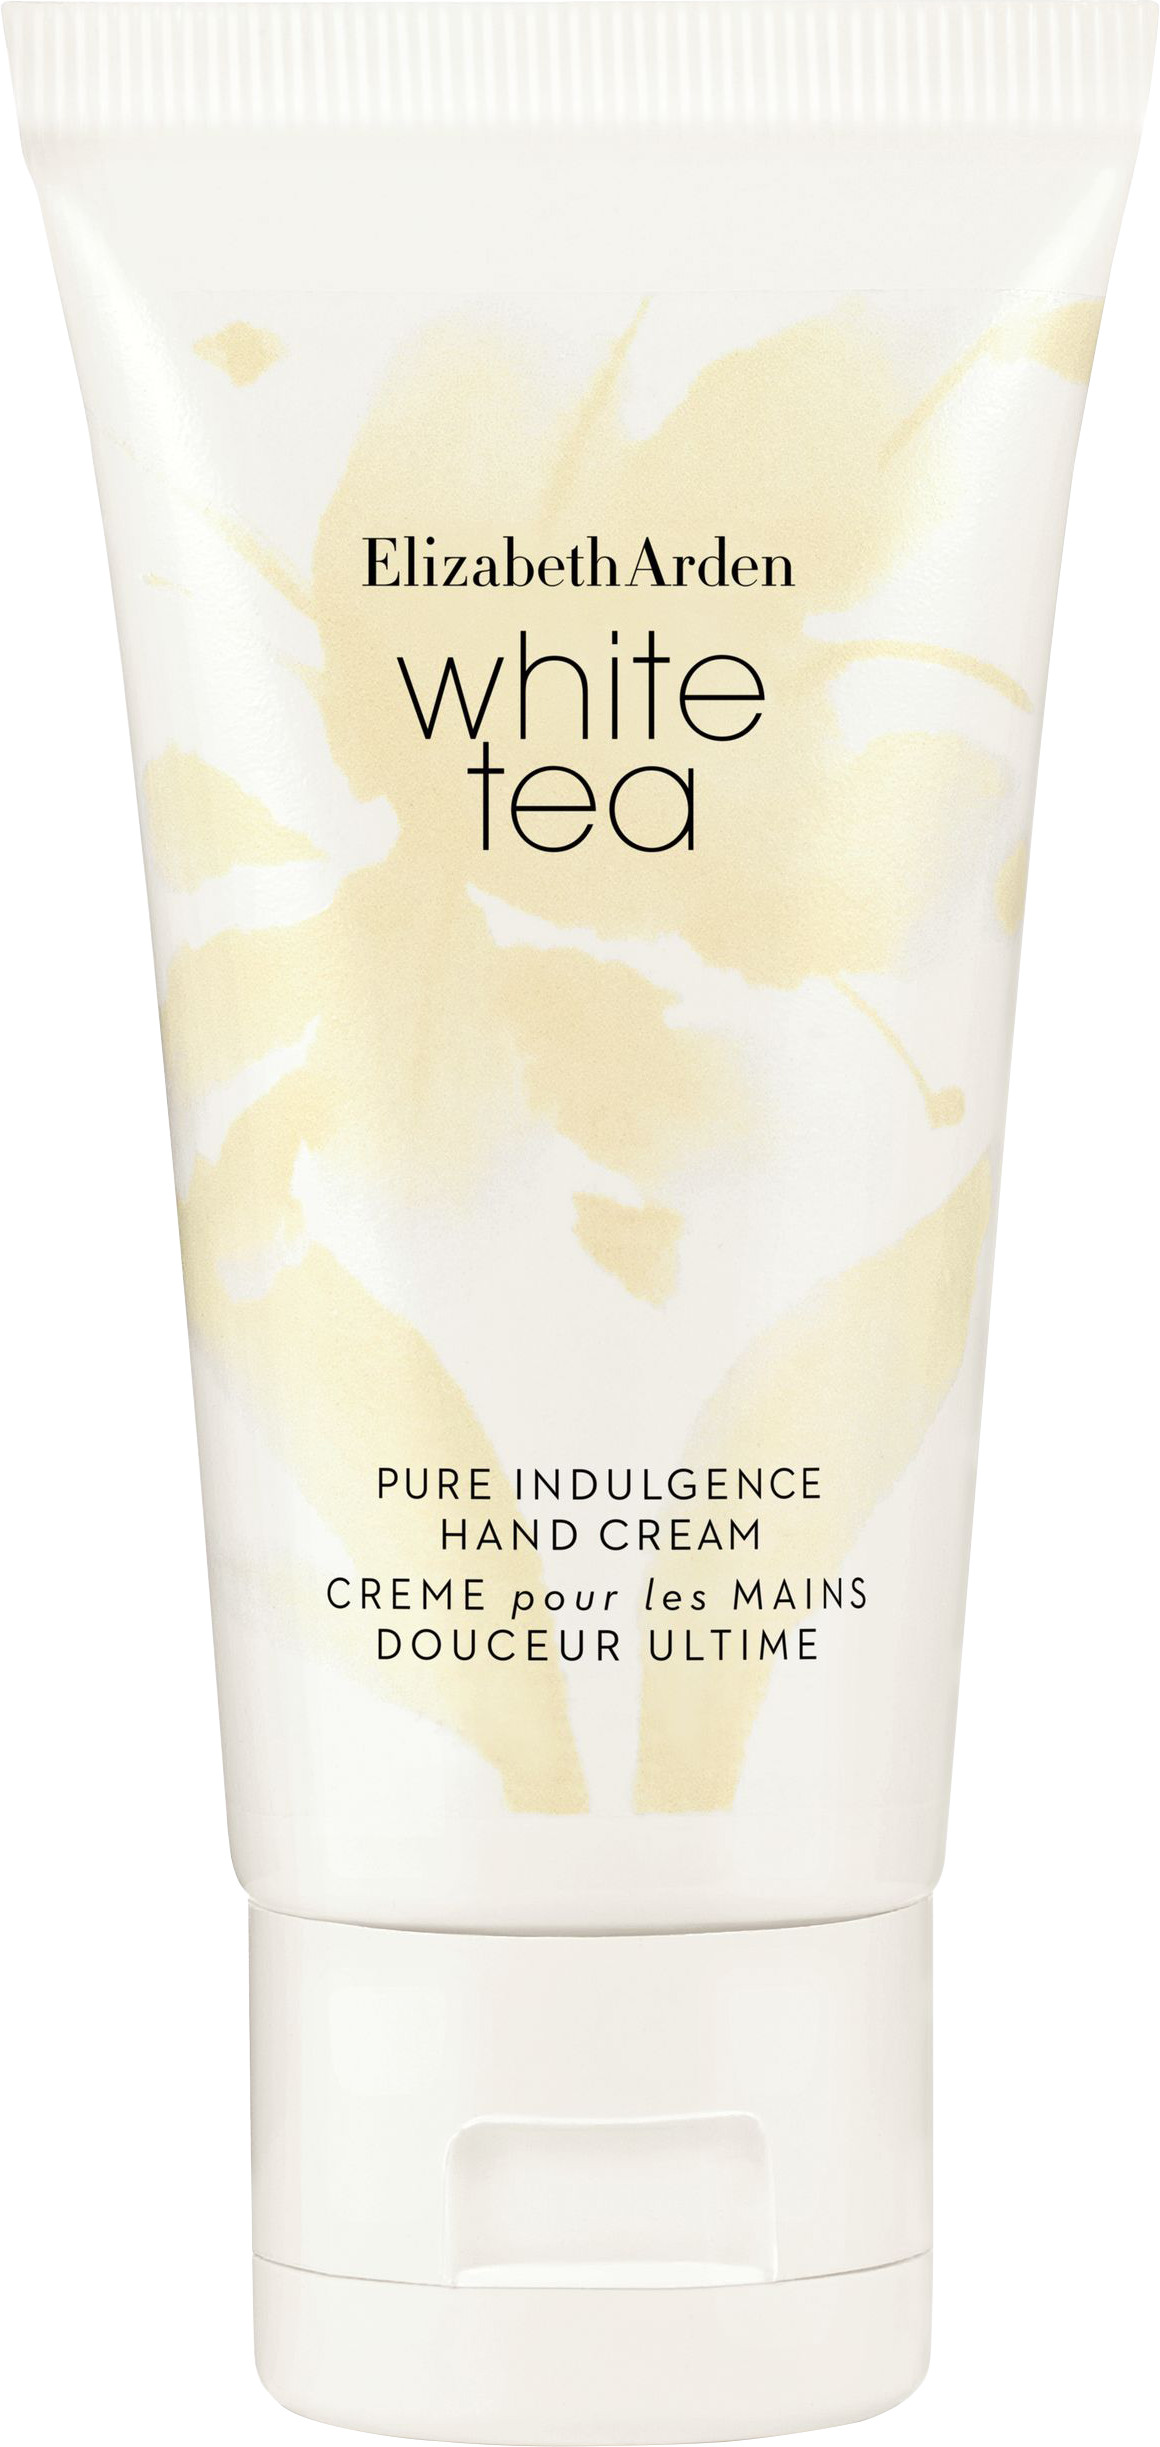 ELIZABETH ARDEN WHITE TEA PURE INDULGENCE HAND CREAM  30 ML @